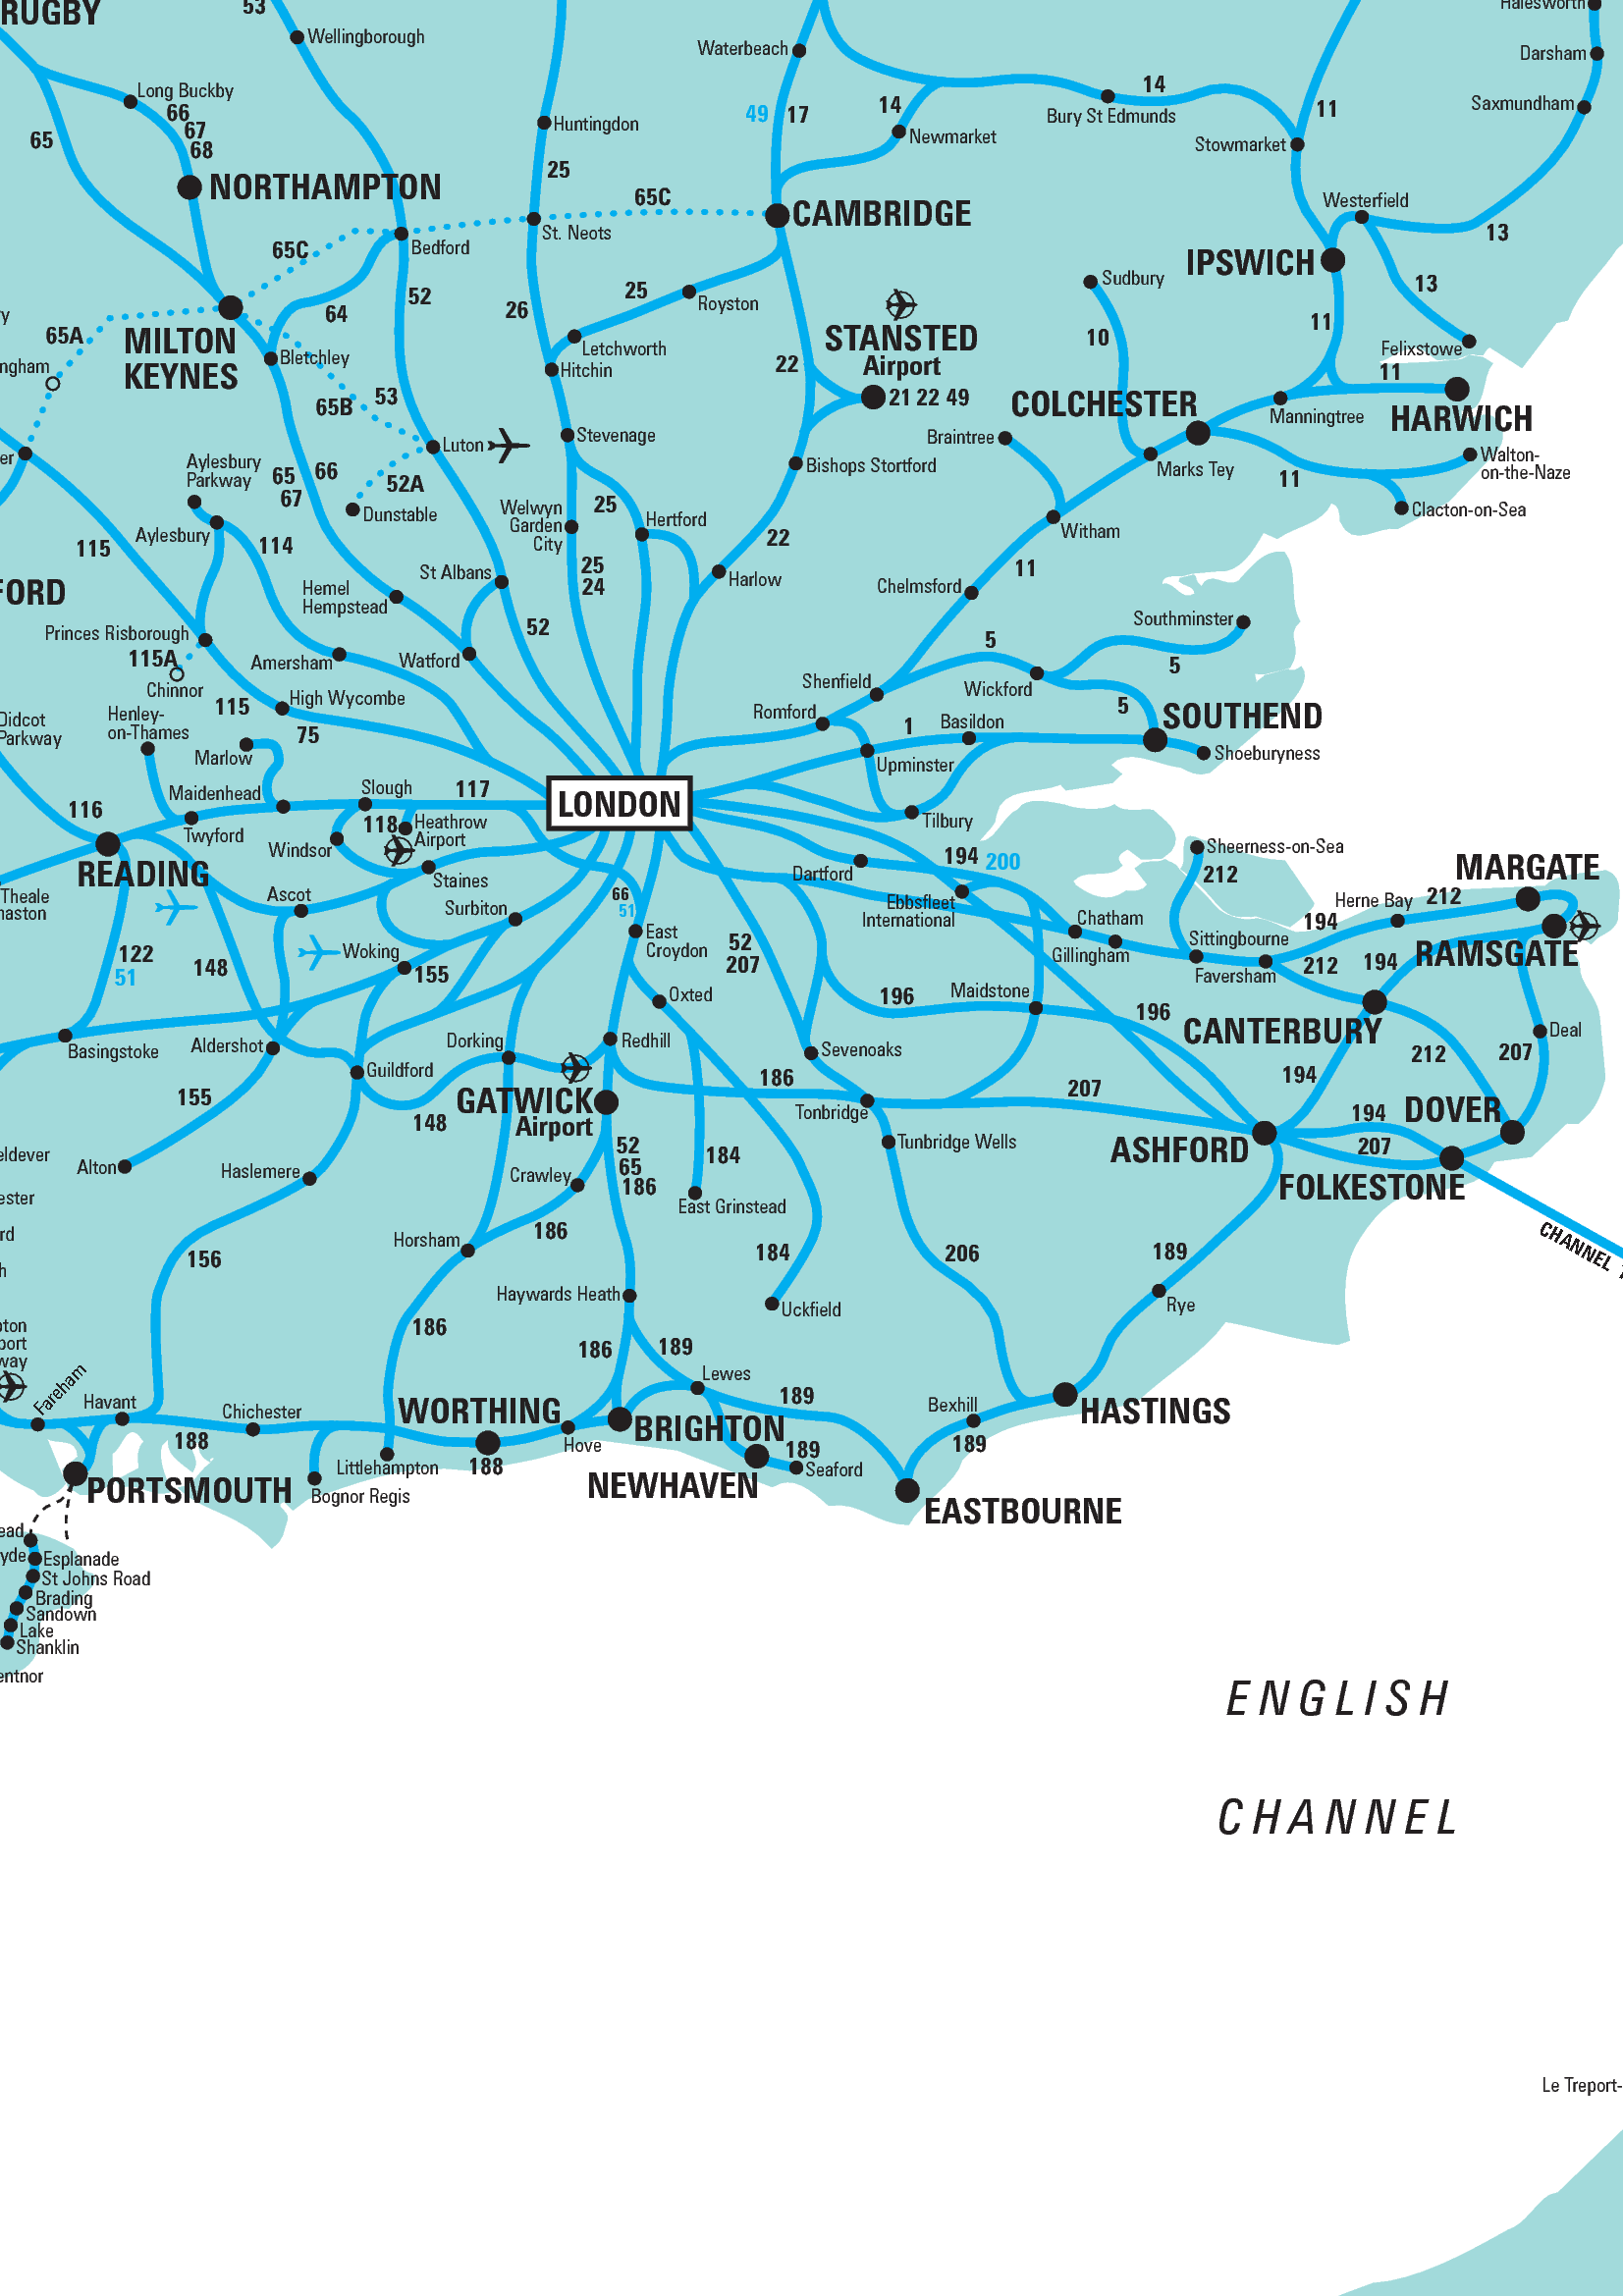 Rail Map South East Rail map of the South East of England